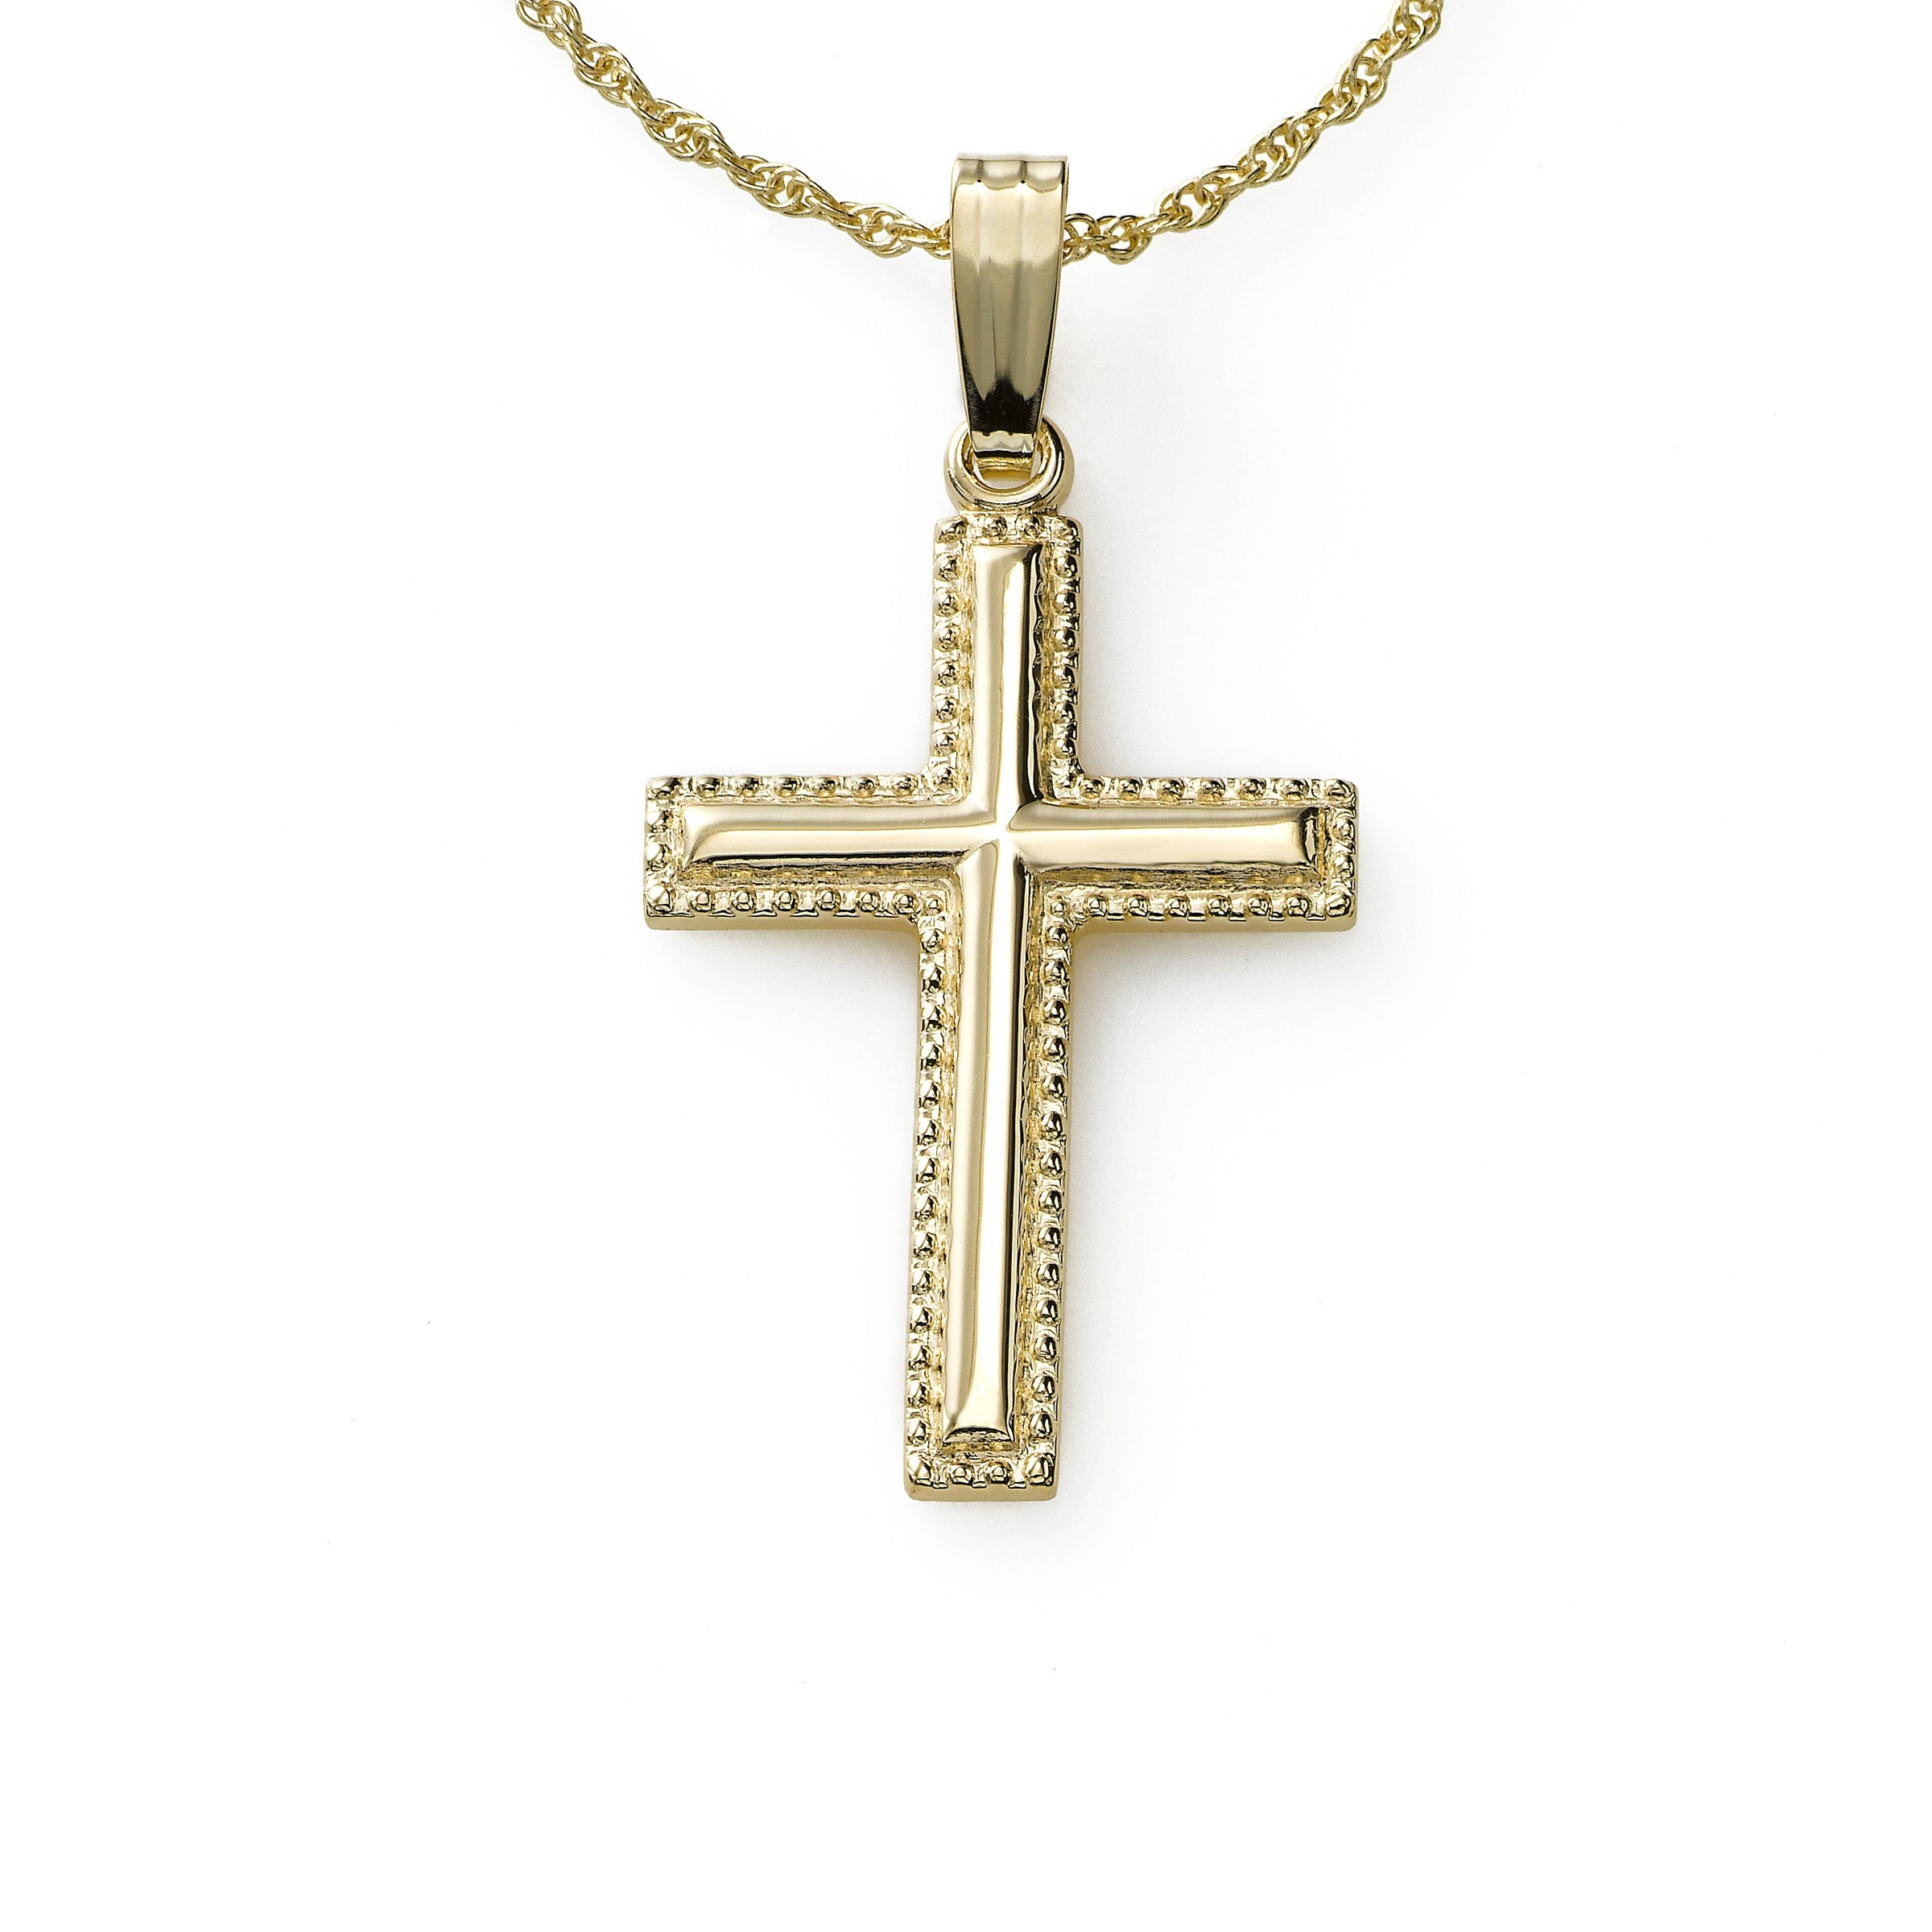 Lightweight Beaded Cross on Chain, One Inch, 14K Yellow Gold